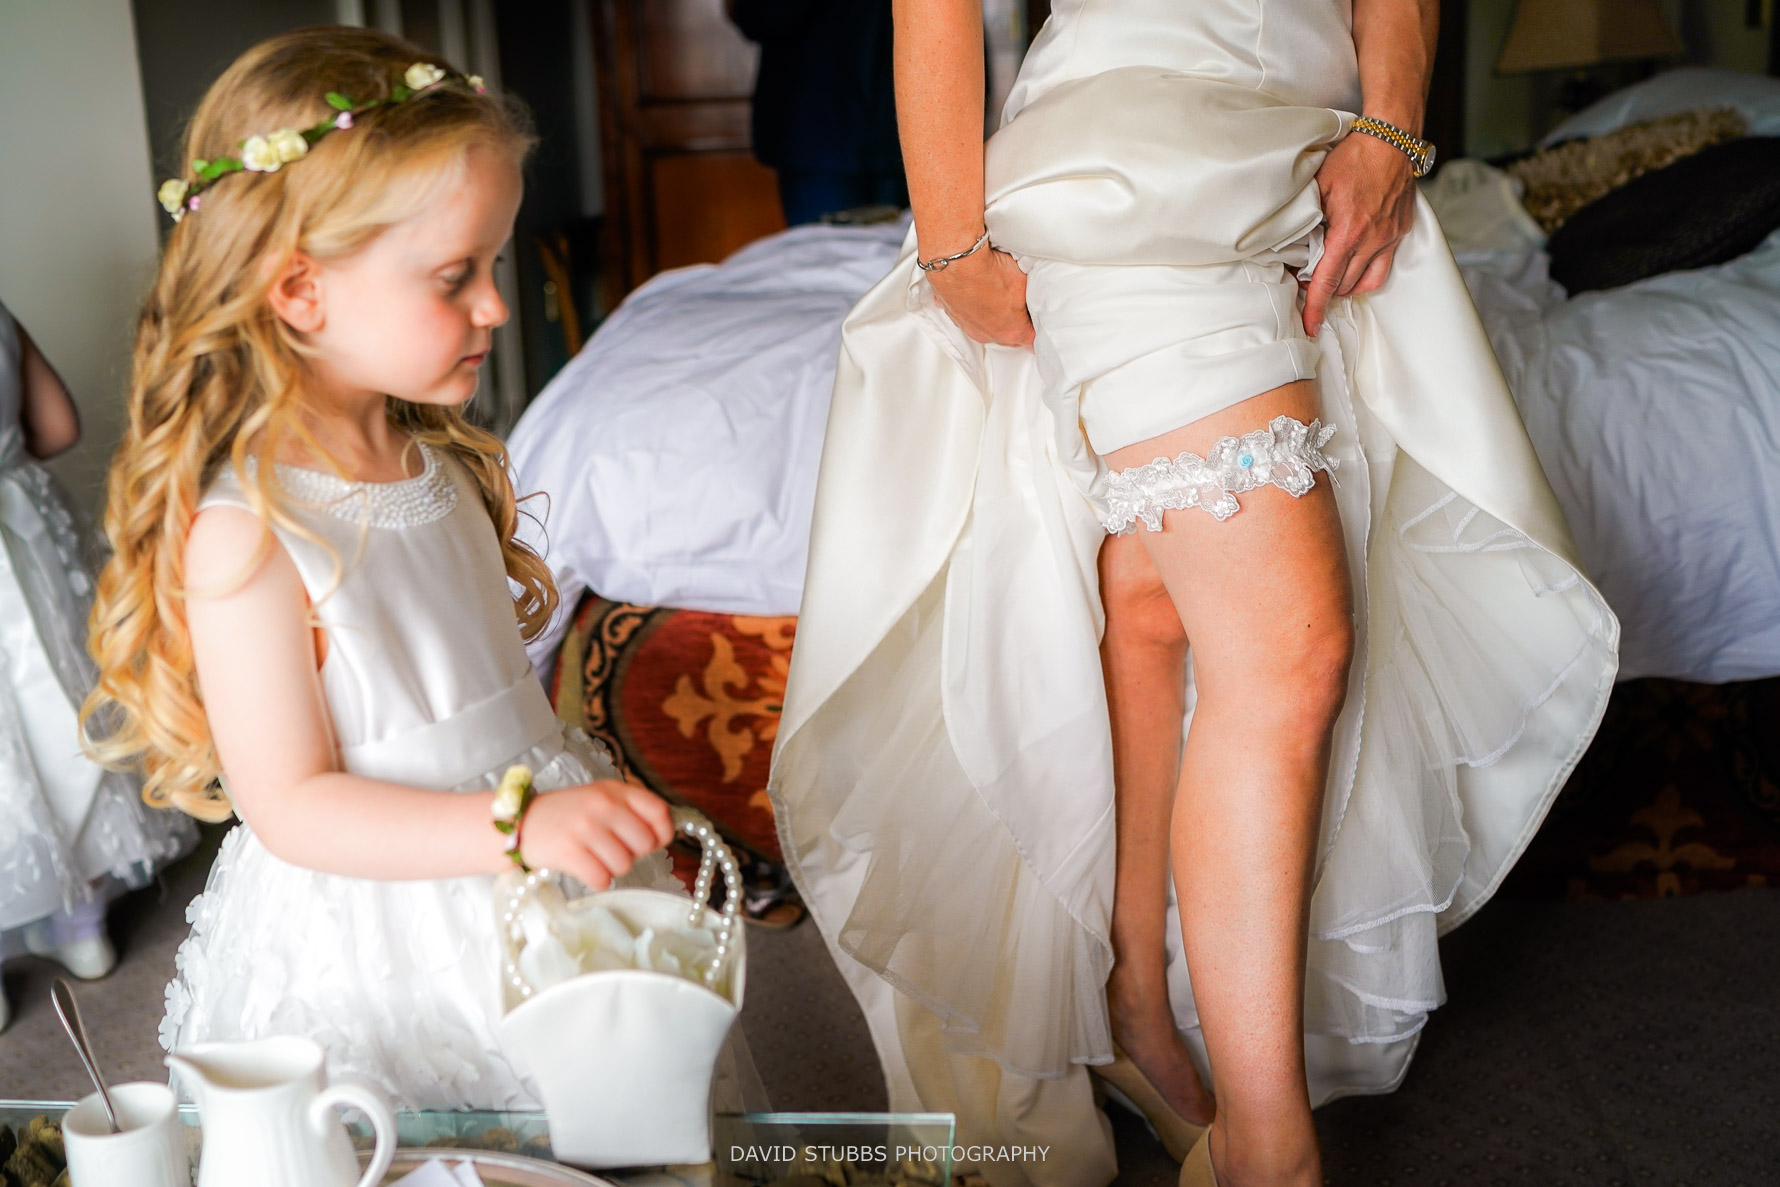 putting the garter on her leg